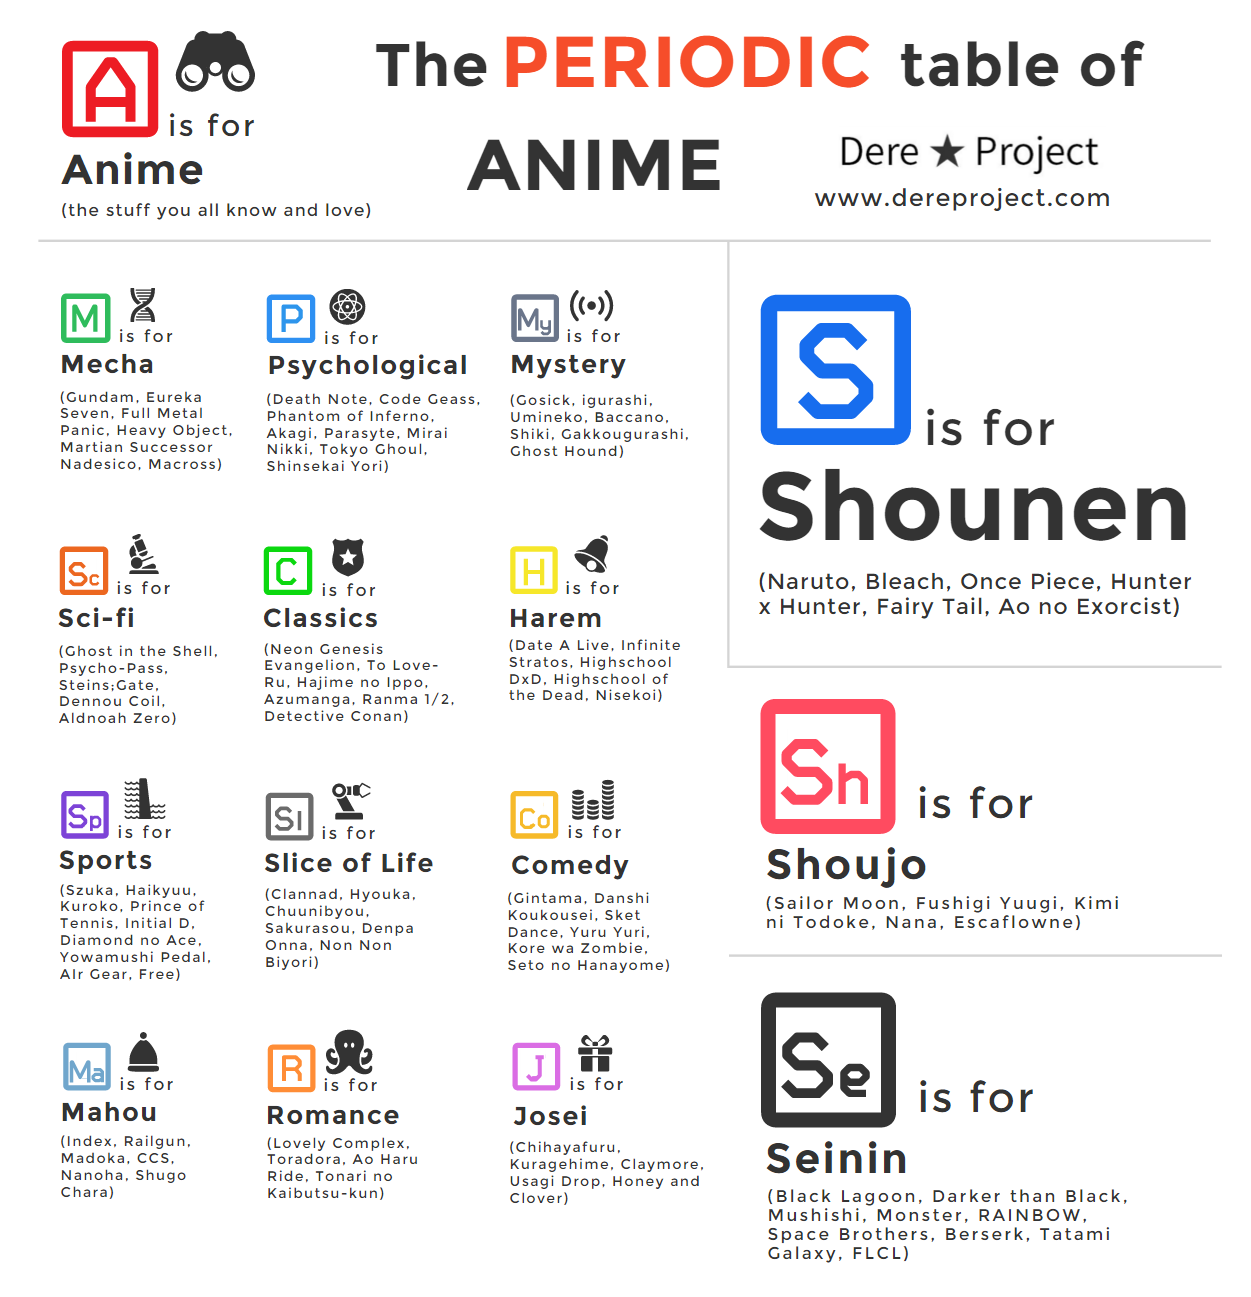 The Periodic Table Of Anime By Dere Project General Anime